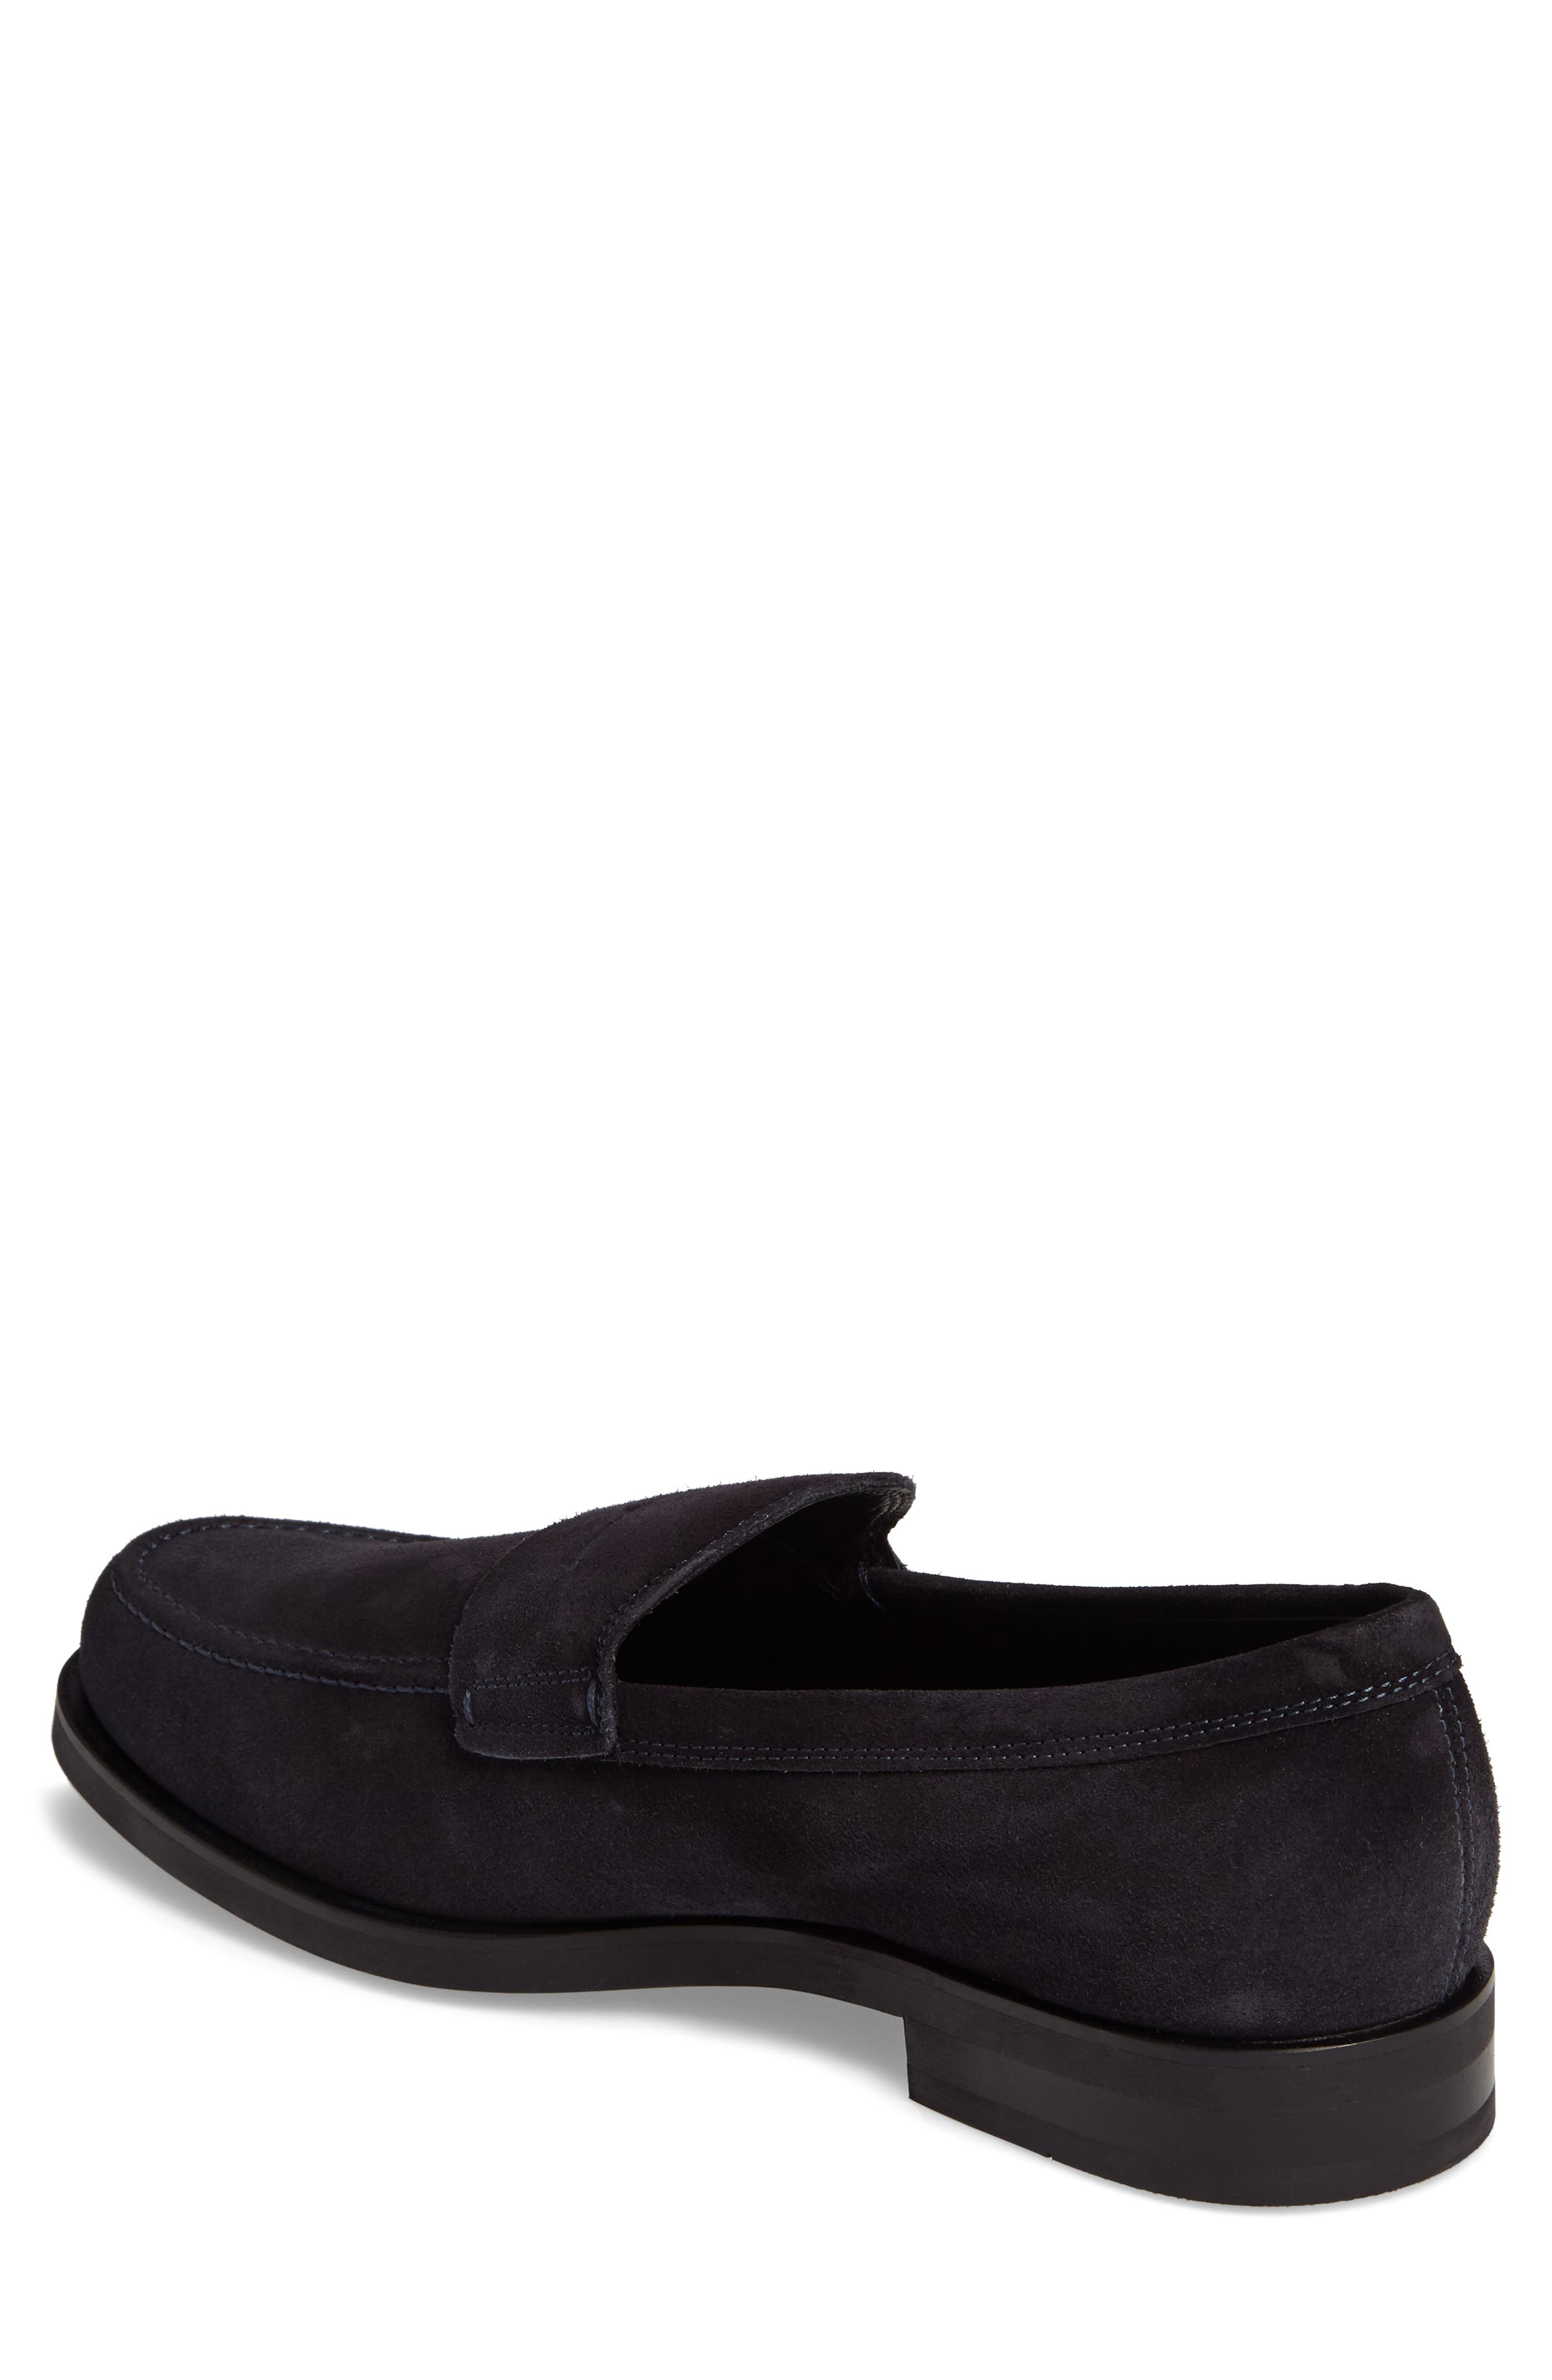 Penny Loafer,                             Alternate thumbnail 2, color,                             Navy Suede